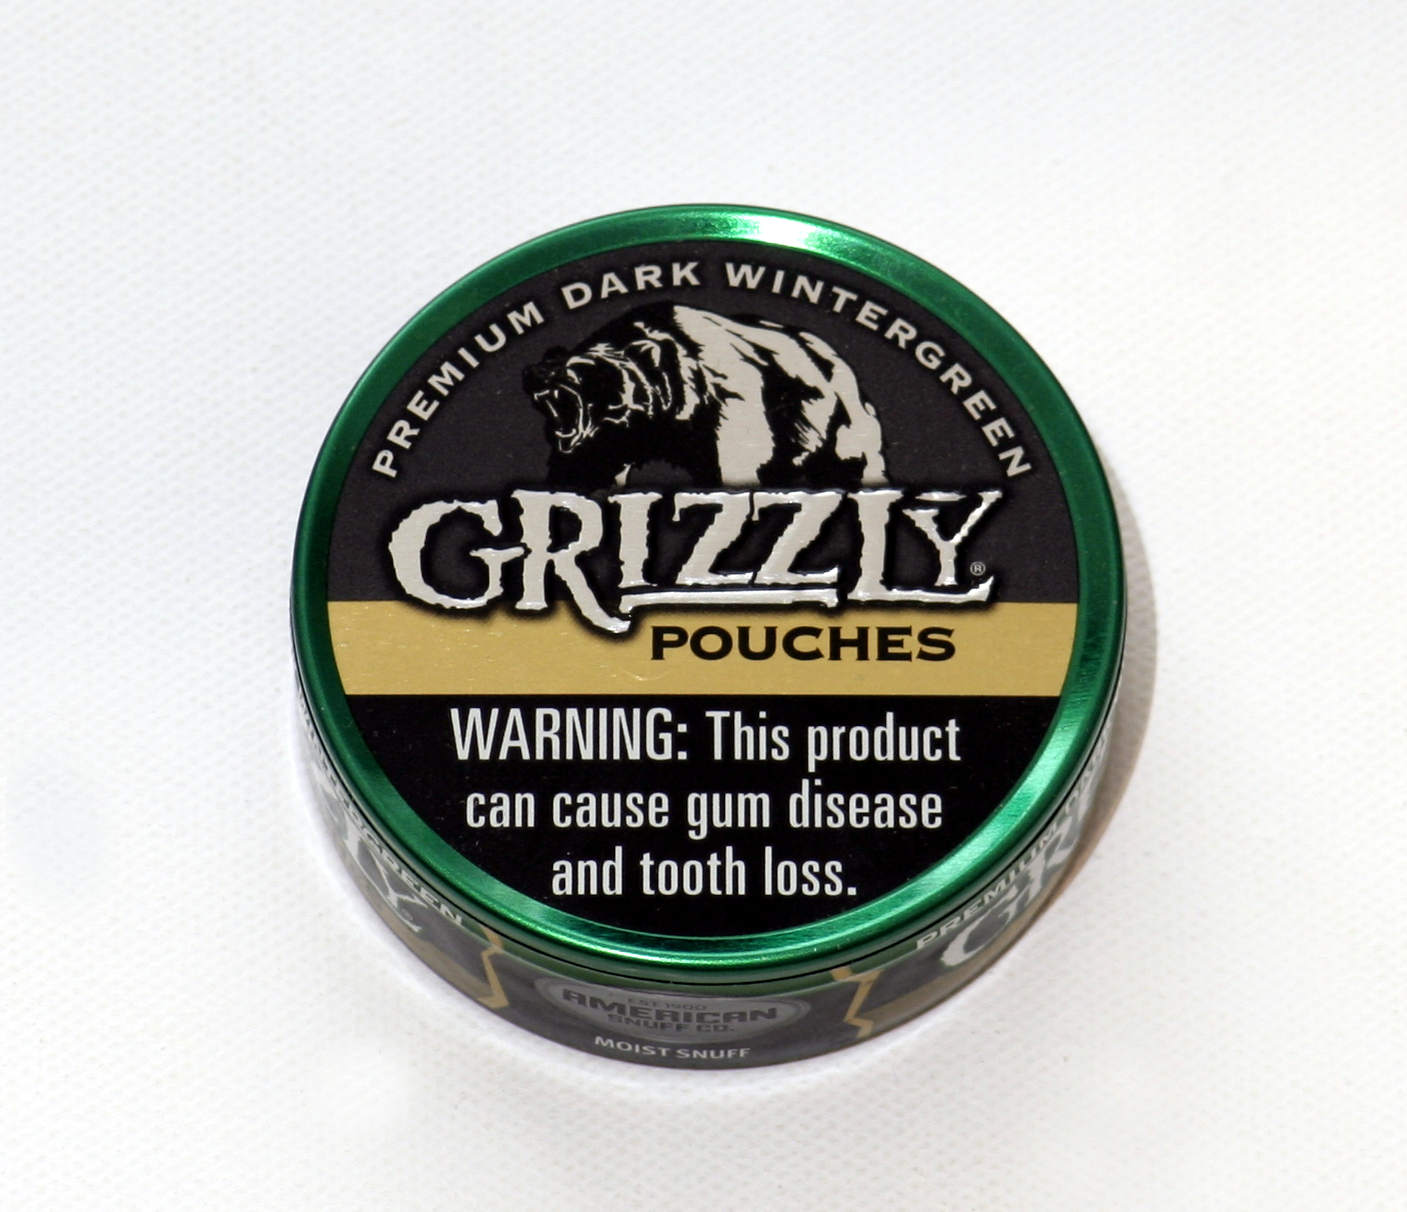 grizzly dark wintergreen pouches godfather cigars